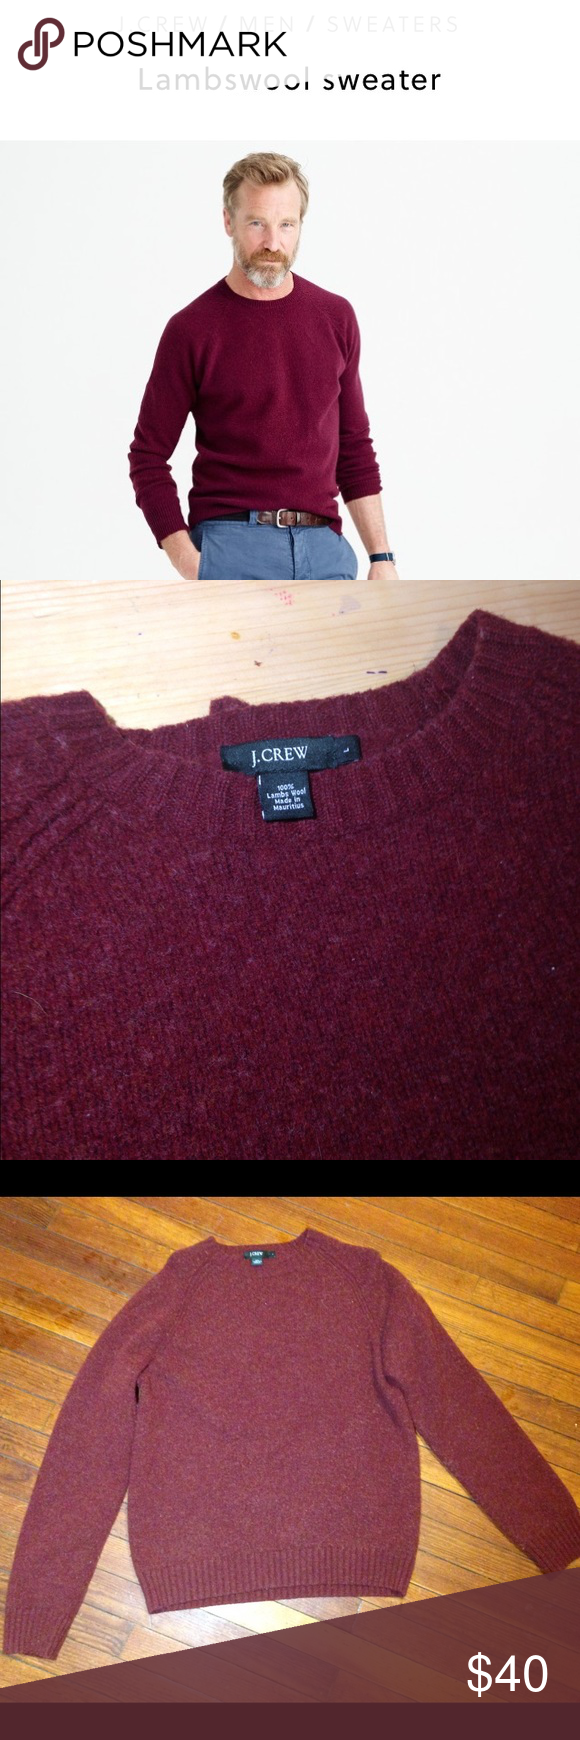 ❤️J. Crew Lambswool Burgundy Men's Sweater ❤️❤️❤️ 100% Lambswool Burgundy Men's size large Sweater by J.Crew. Have your Hubby stay warm this winter with this high quality wool material. Beautiful burgundy color! Long sleeves, crew neck cut neckline. Pullover style J. Crew Sweaters Crewneck